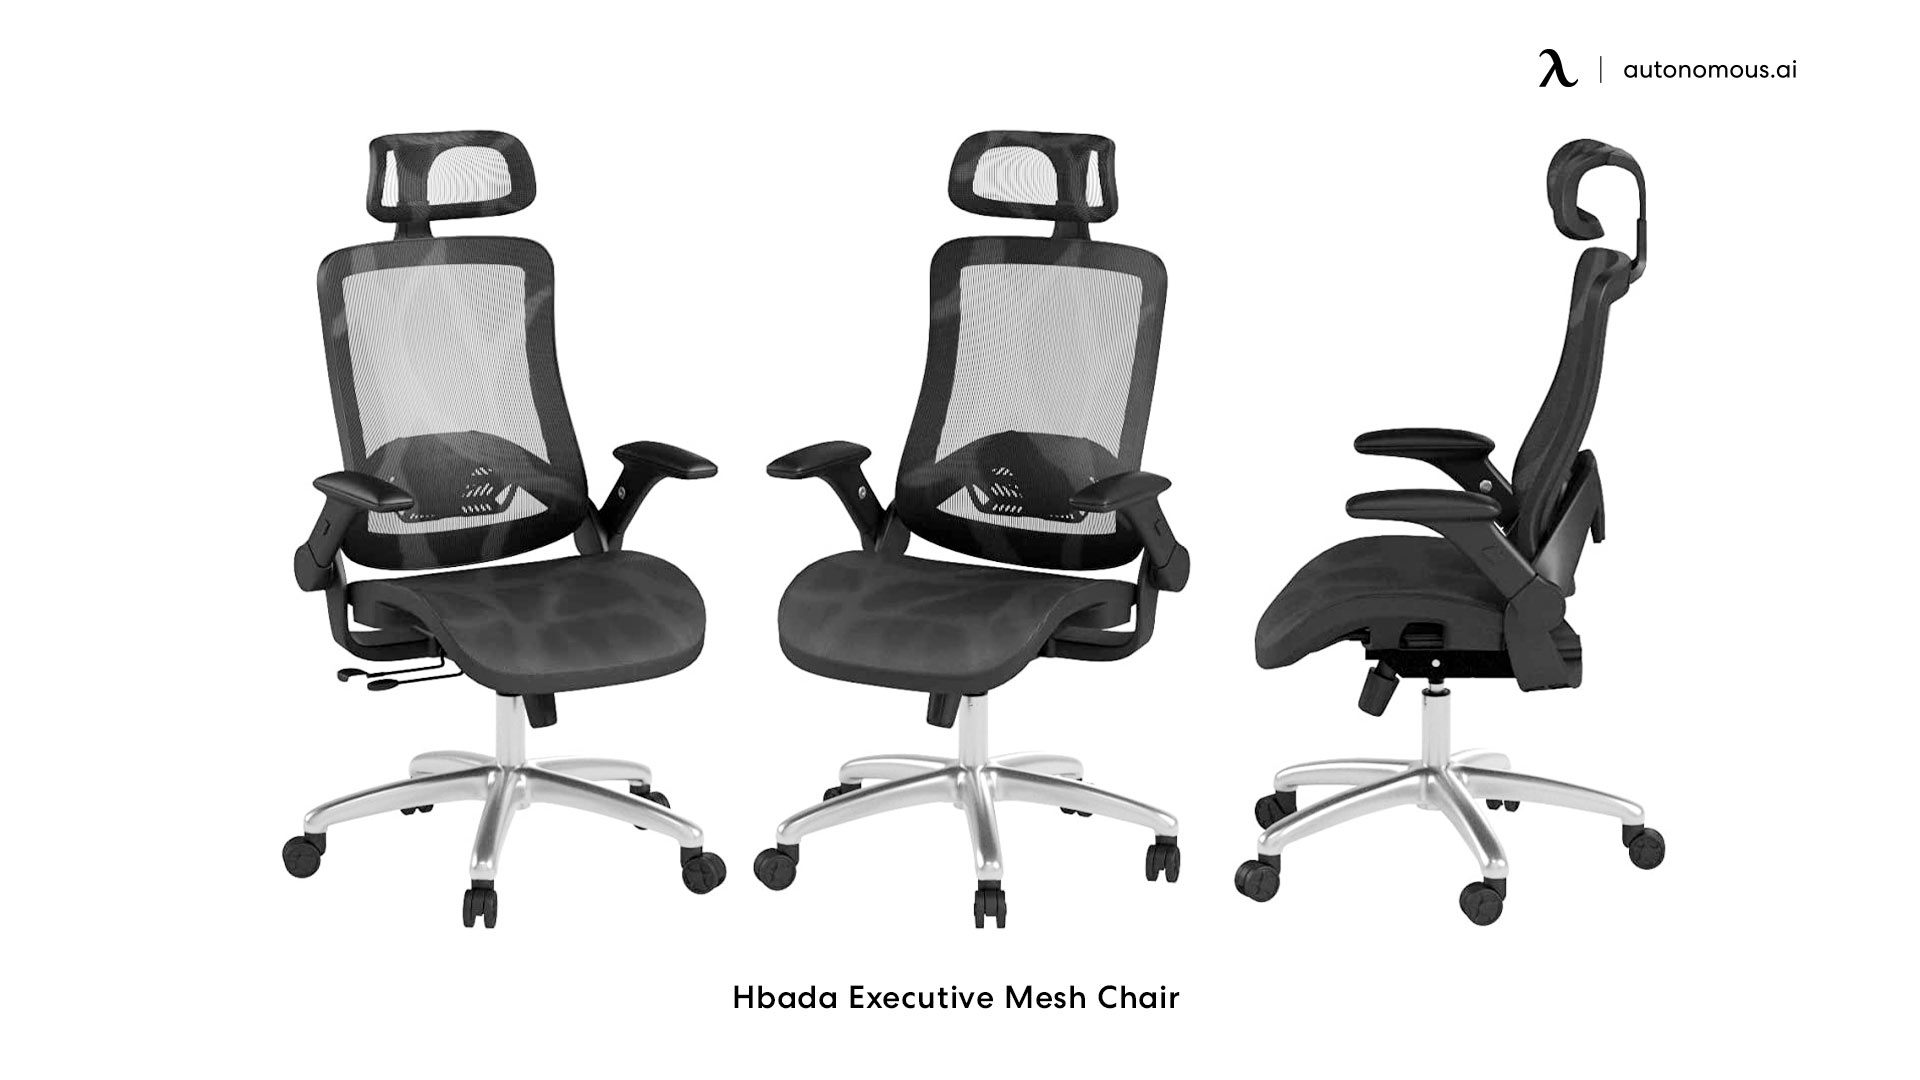 hbaba office chair design